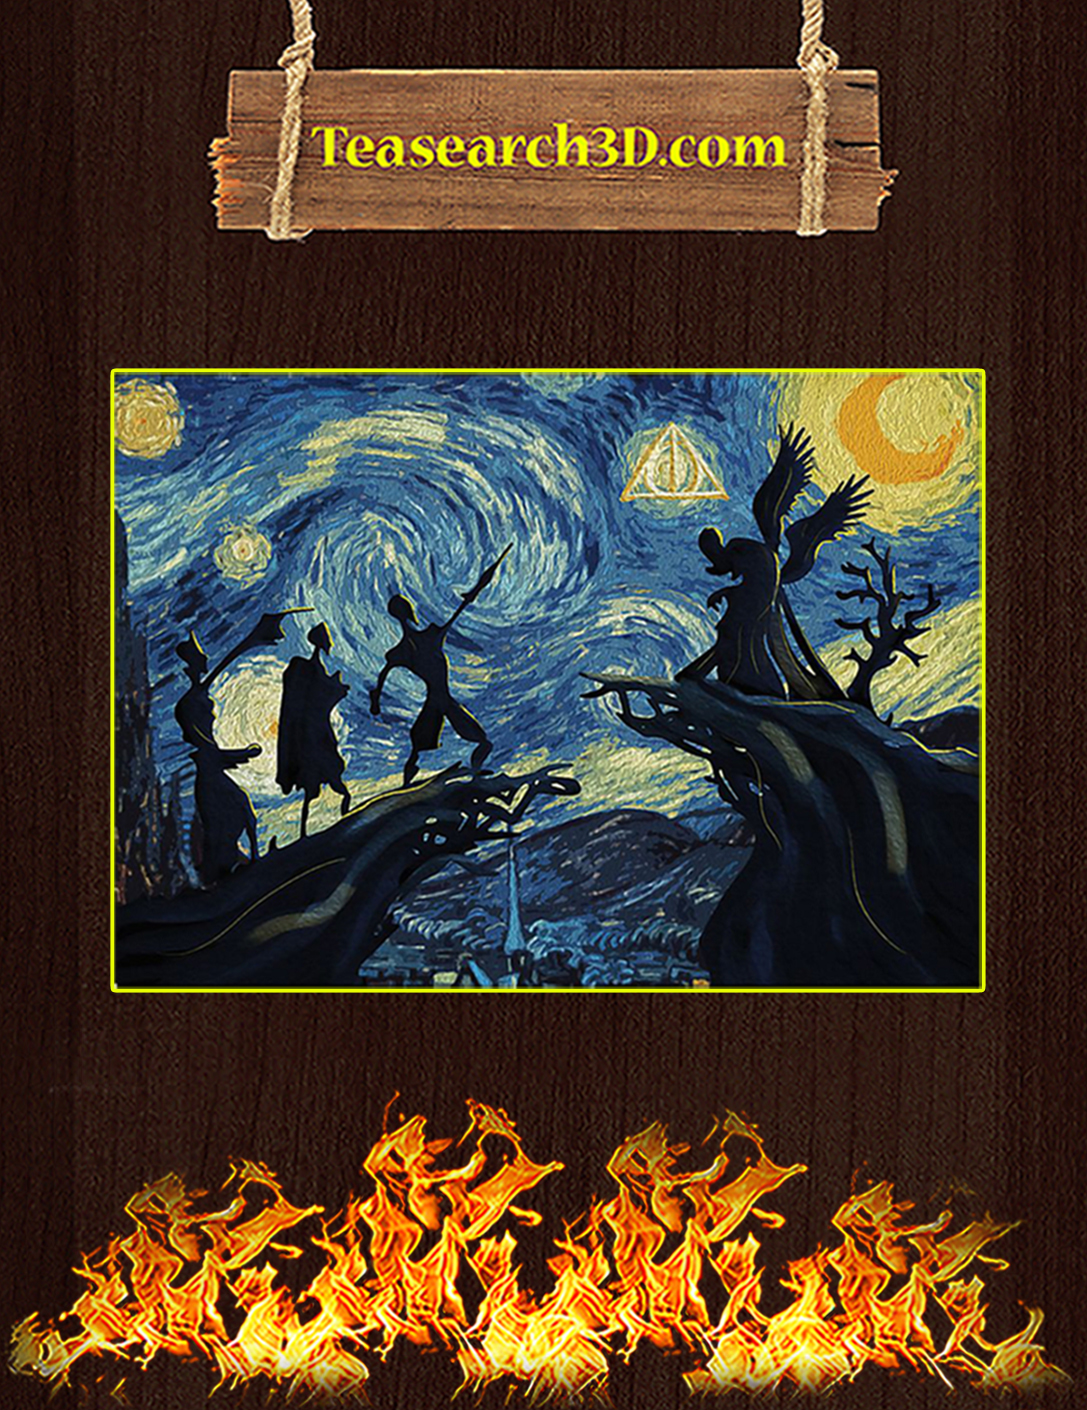 Deathly hallows starry night van gogh poster A2